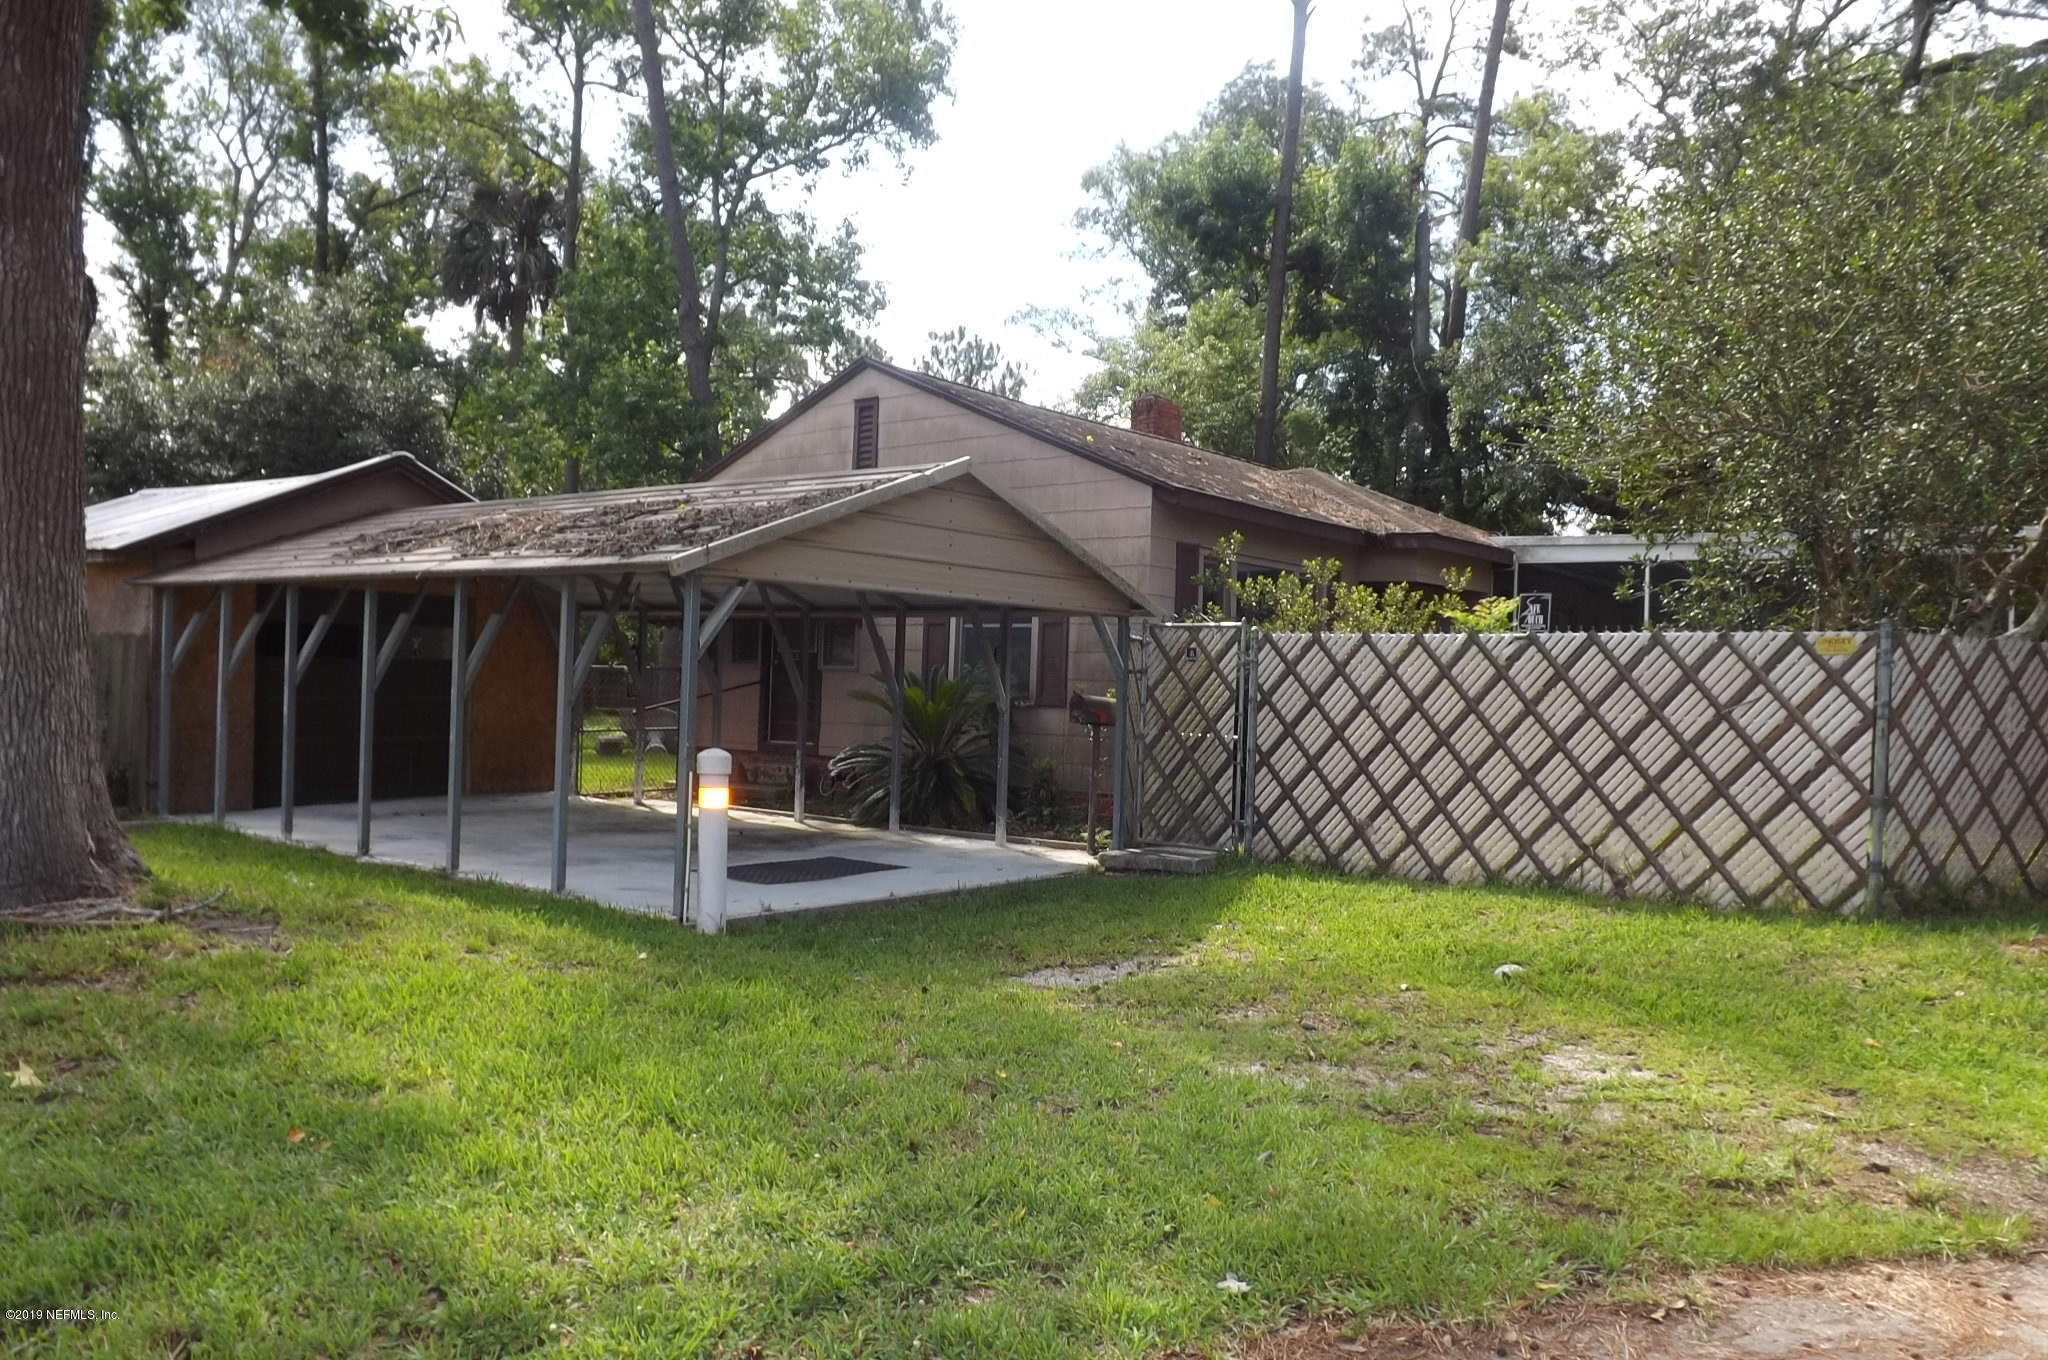 4567 SUSSEX, JACKSONVILLE, FLORIDA 32210, 2 Bedrooms Bedrooms, ,1 BathroomBathrooms,Residential - single family,For sale,SUSSEX,1003198